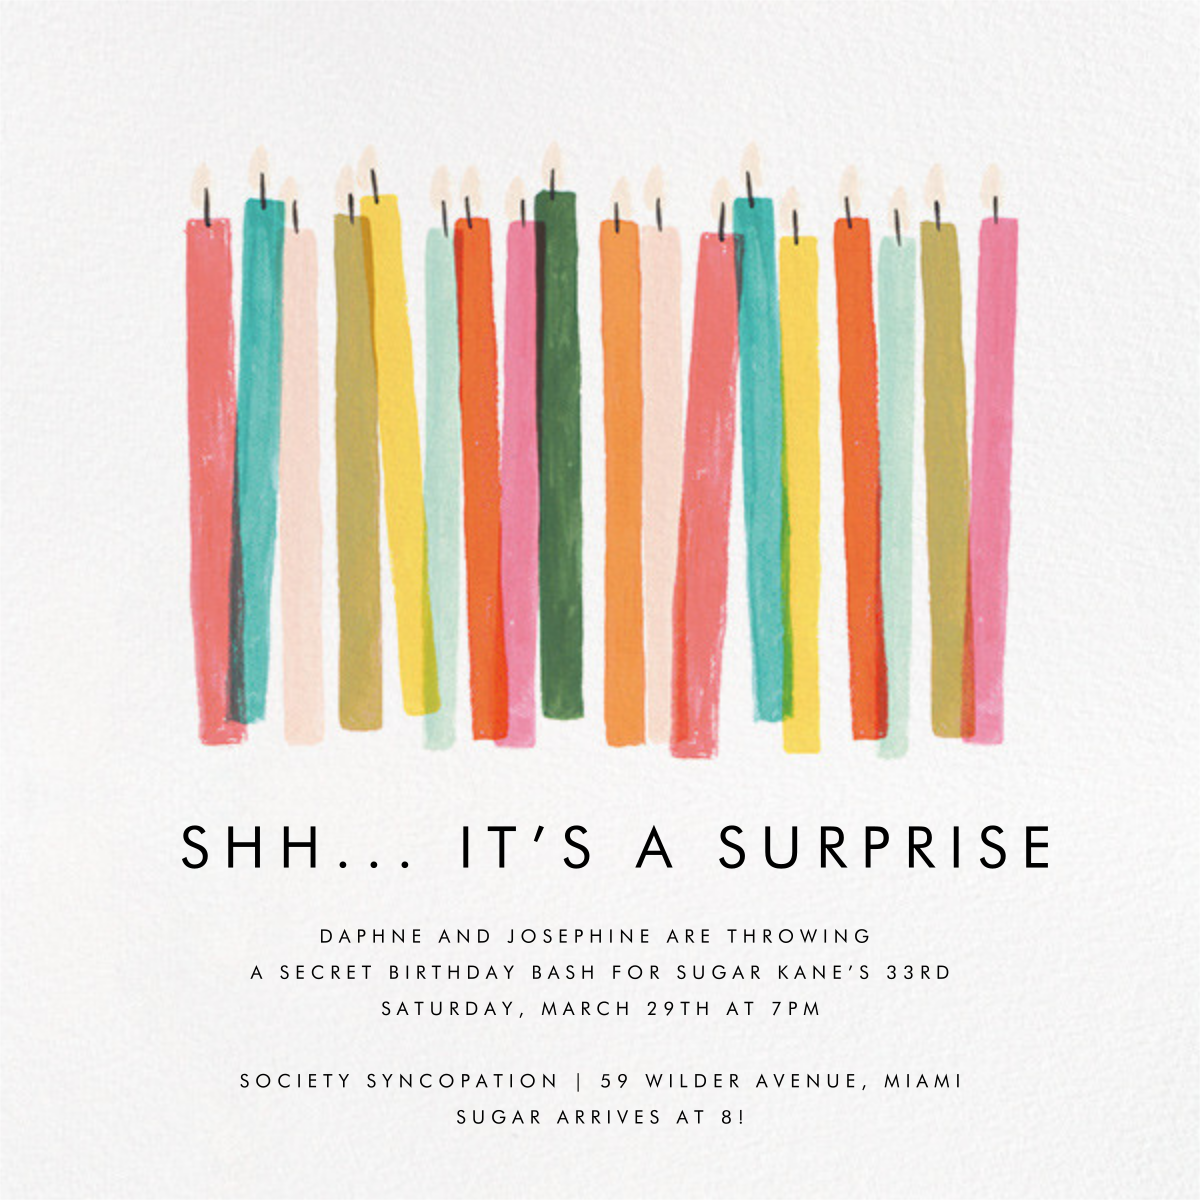 Candle Stand - Rifle Paper Co. - Adult birthday invitations